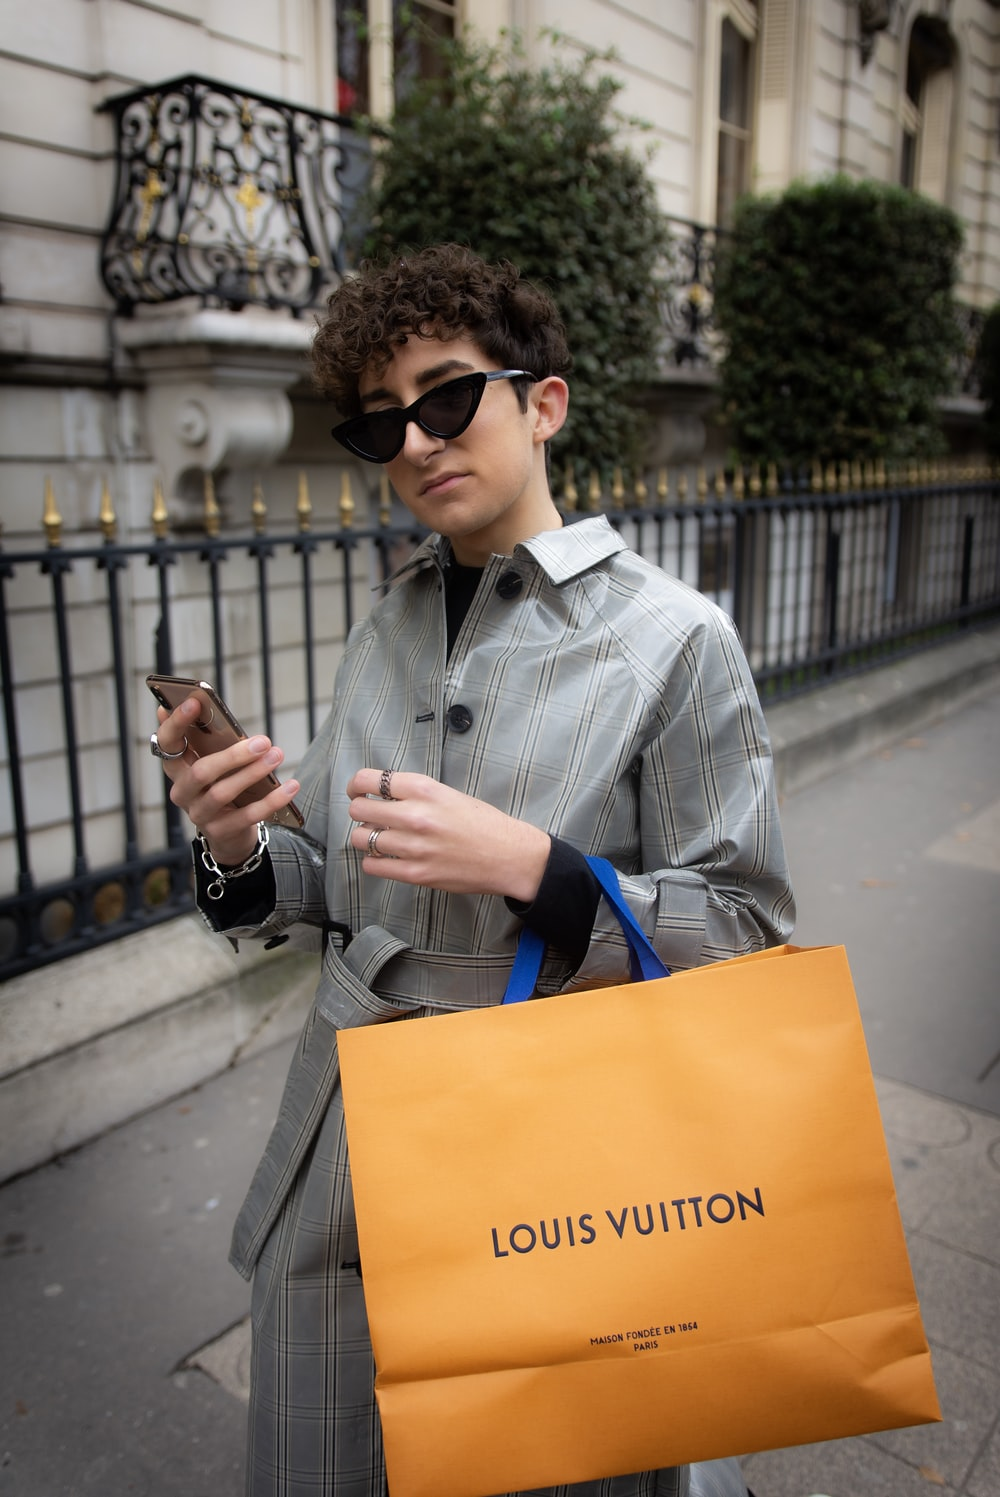 standing person carrying Louis Vuitton shopping bag